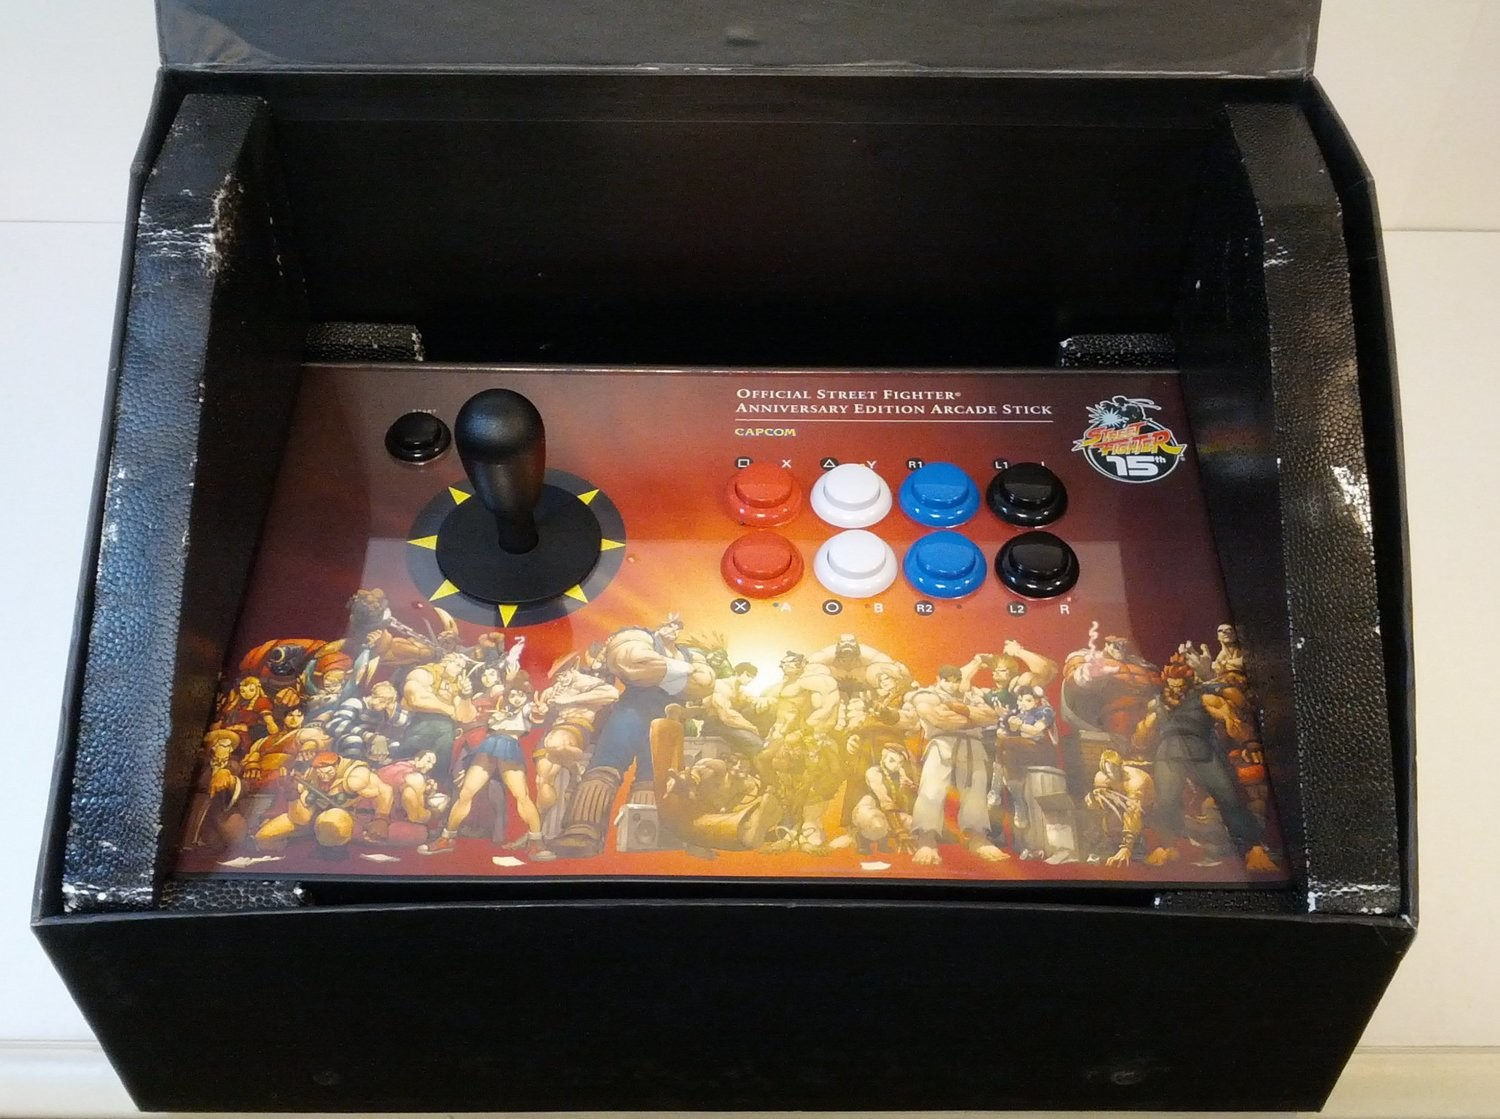 Street Fighter Anniversary Edition Arcade Stick for PS2 & Xbox - Game Accessory - Used